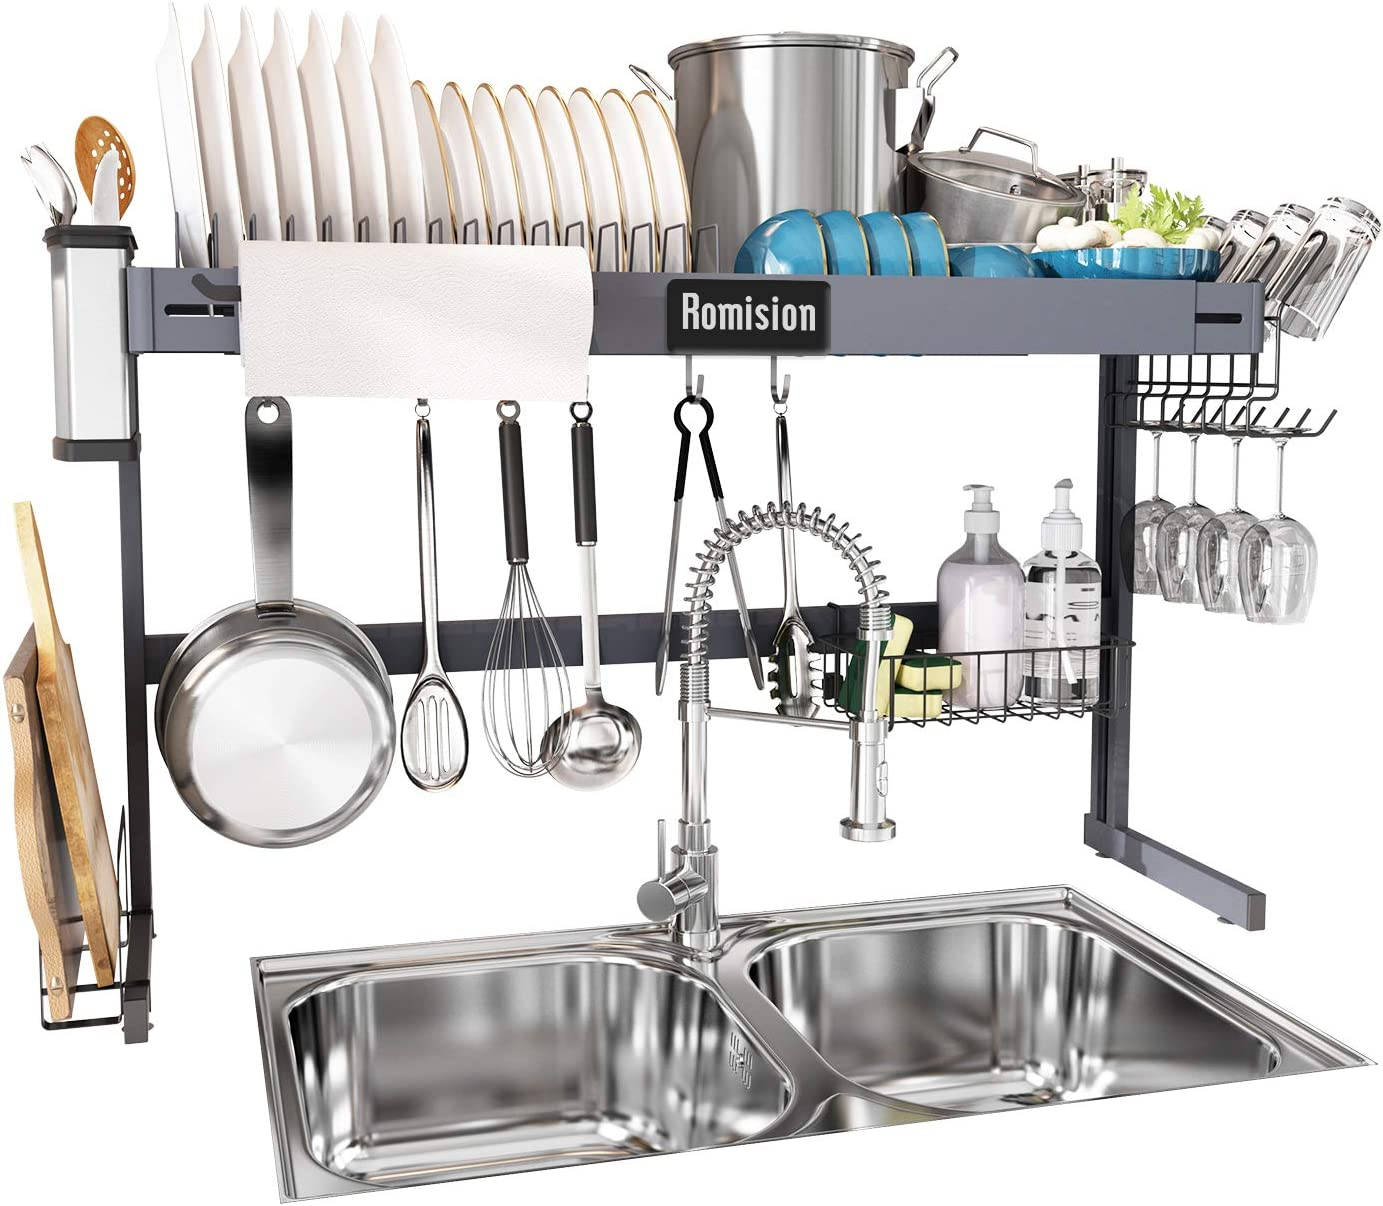 Over the Sink Dish Drying Rack Height Adjustable, Romision Stainless Steel Large Expandable Dish Drainer Shelf Above Sink for Kitchen Counter Organization Storage (Grey, 31≤ Sink Size ≤ 35.2 inch)